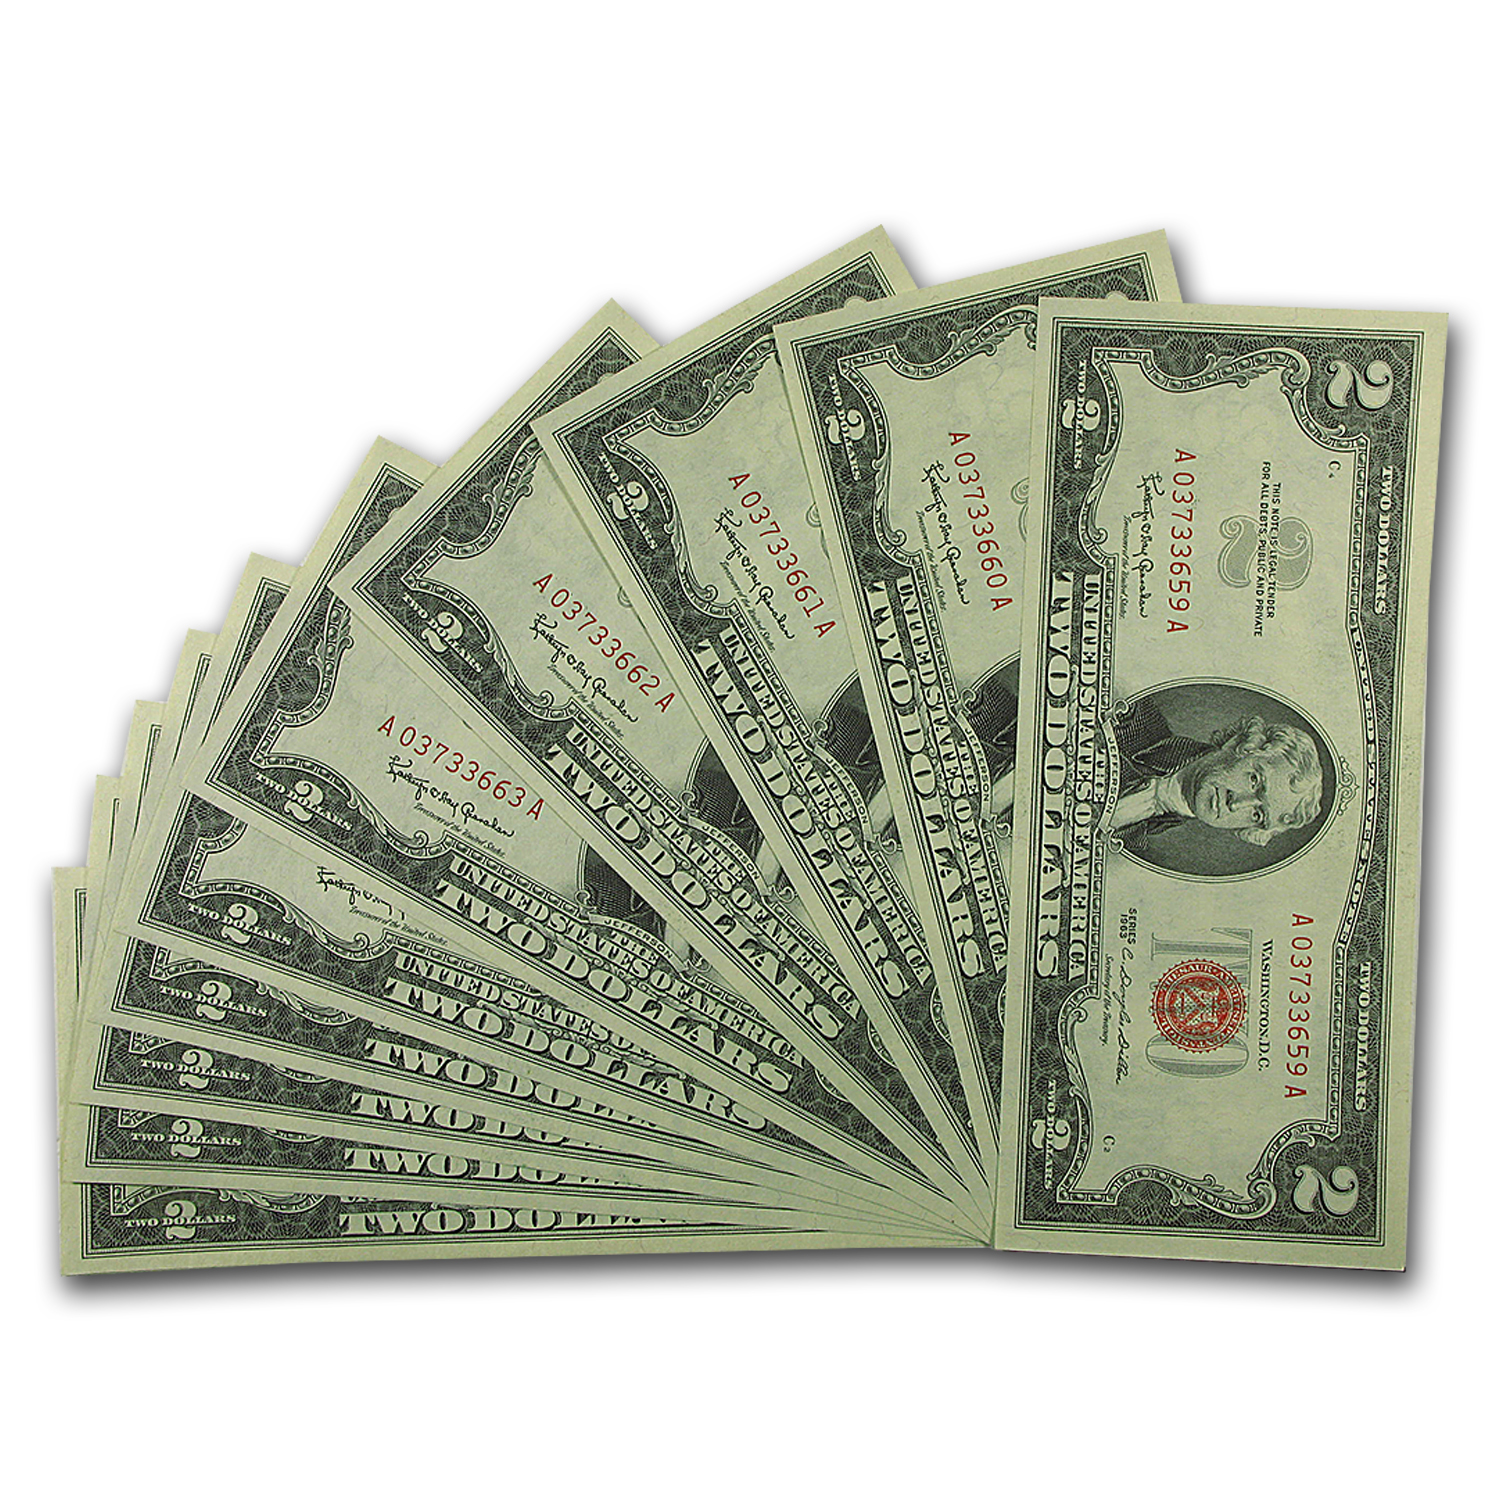 1963 $2.00 U.S. Notes Red Seal CU (10 Consec Serial Numbers)